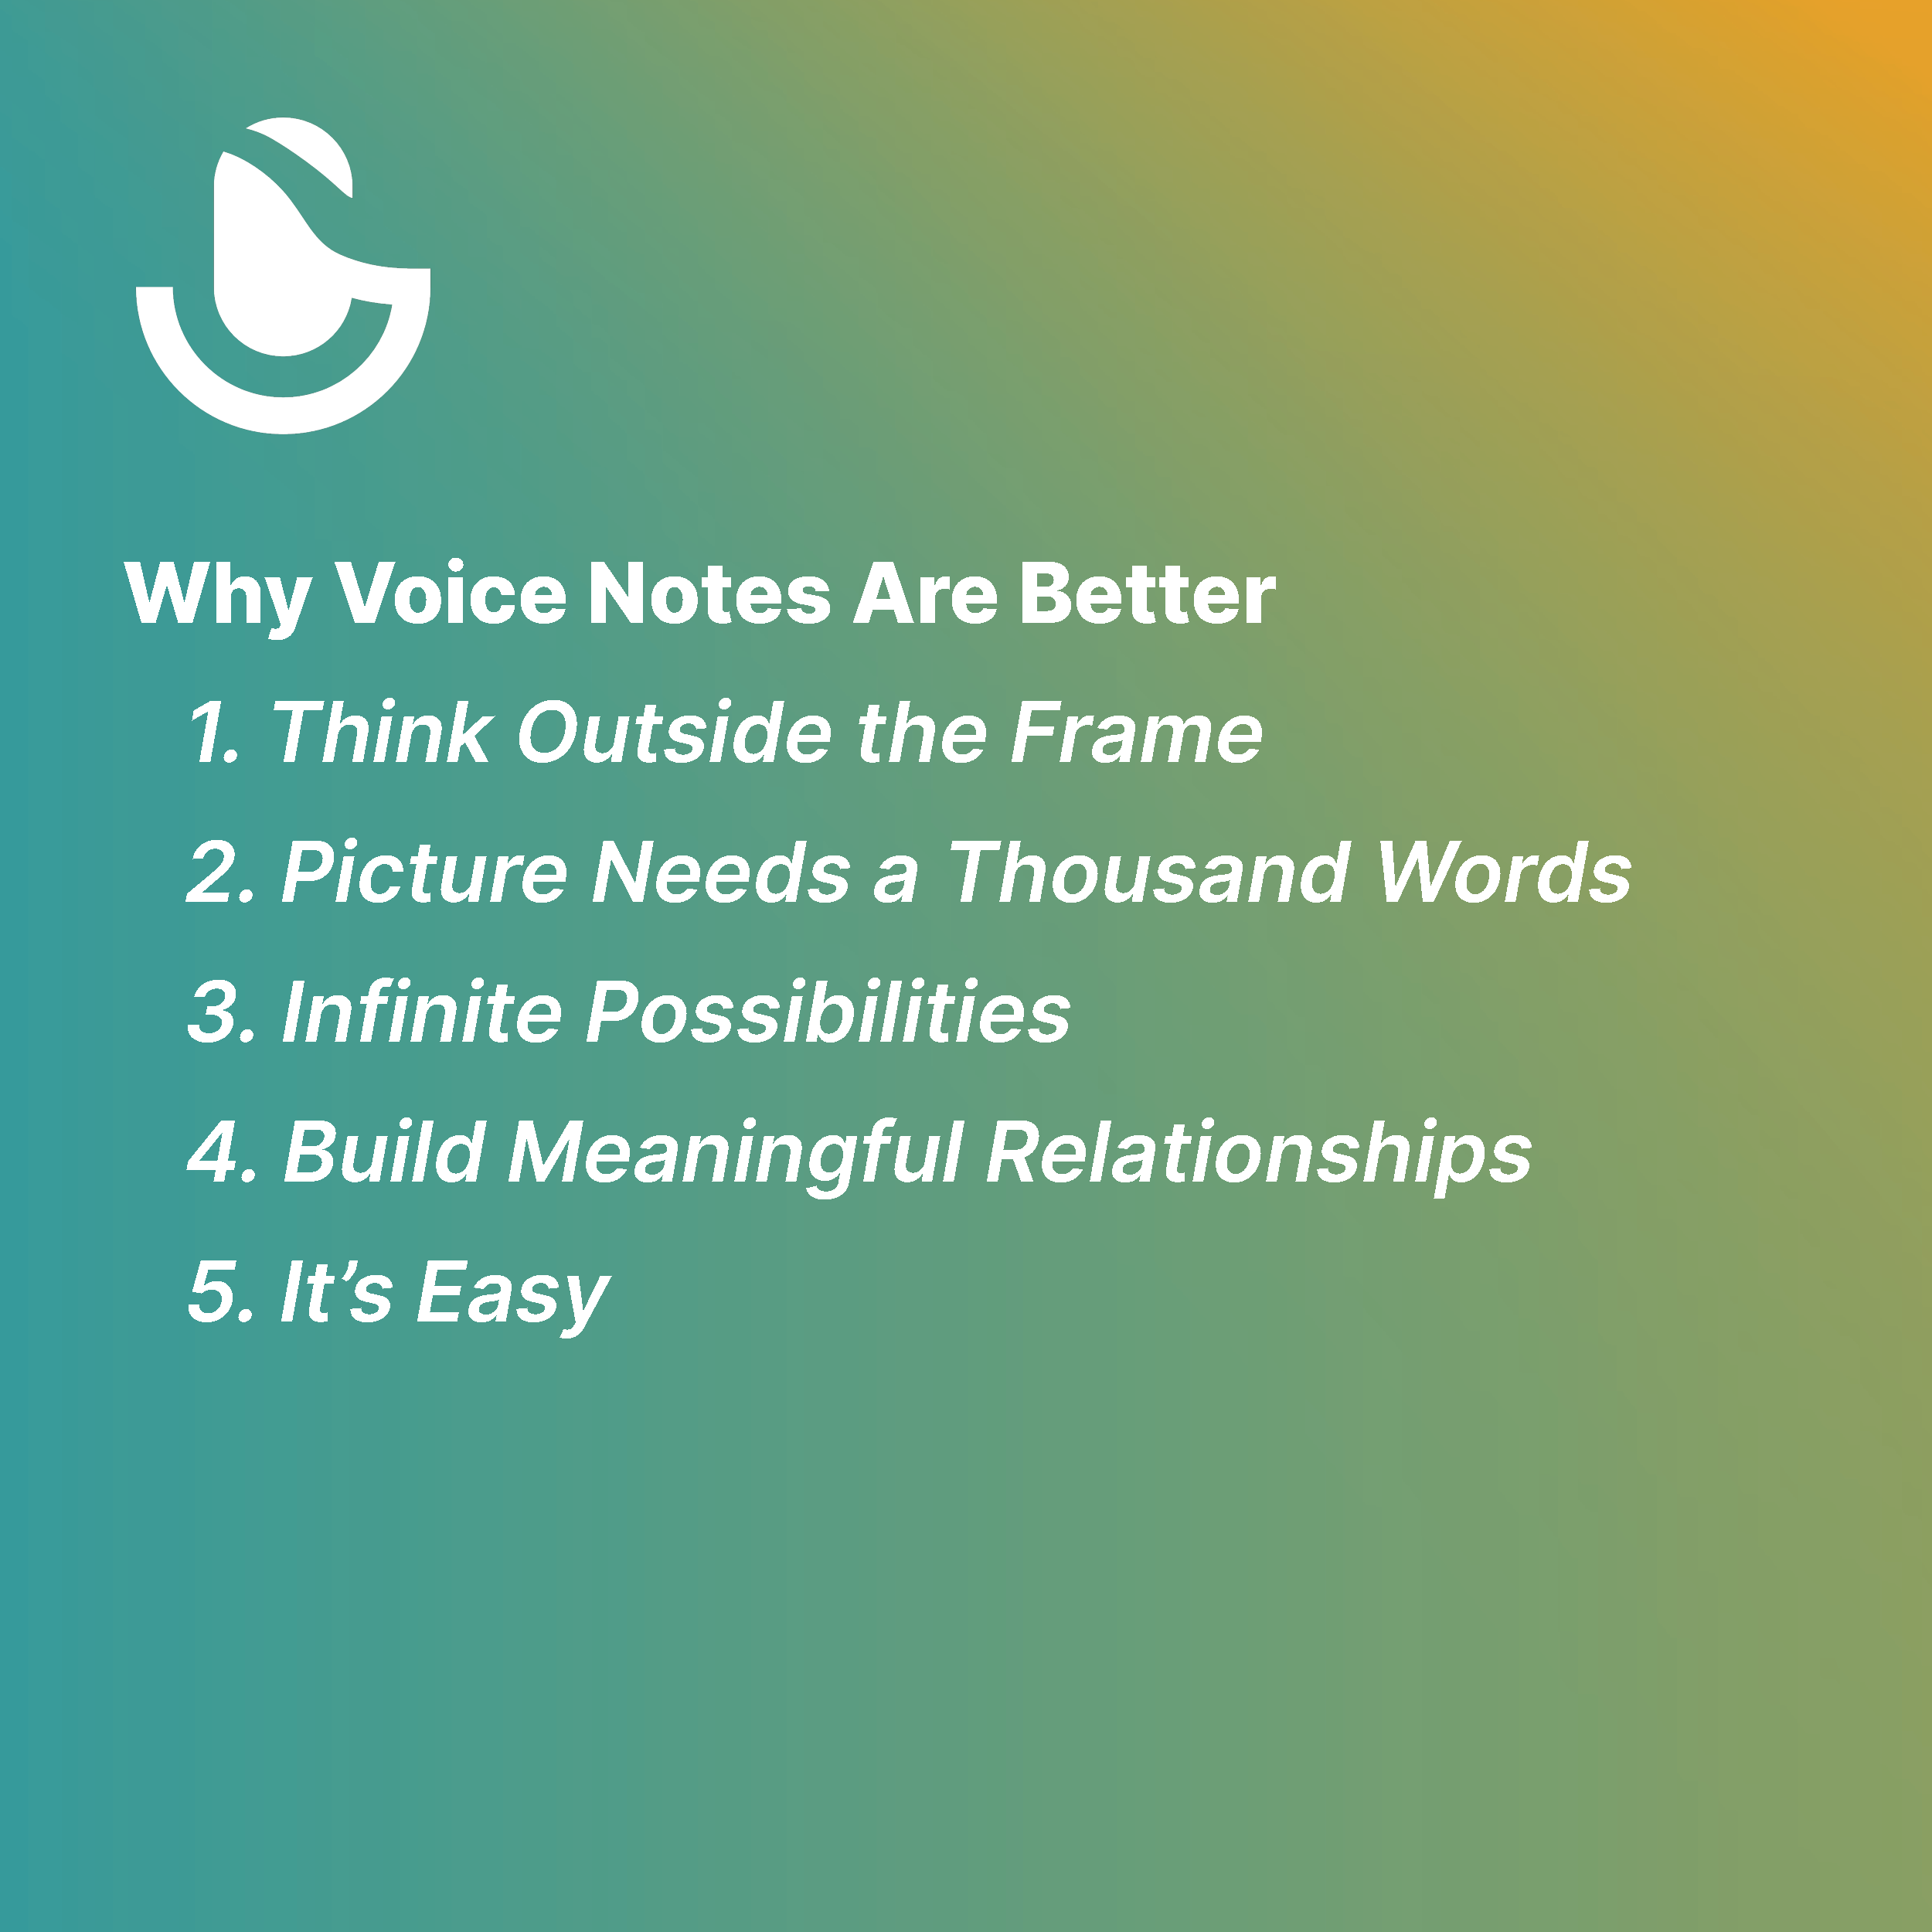 Why Voice Notes Are Better